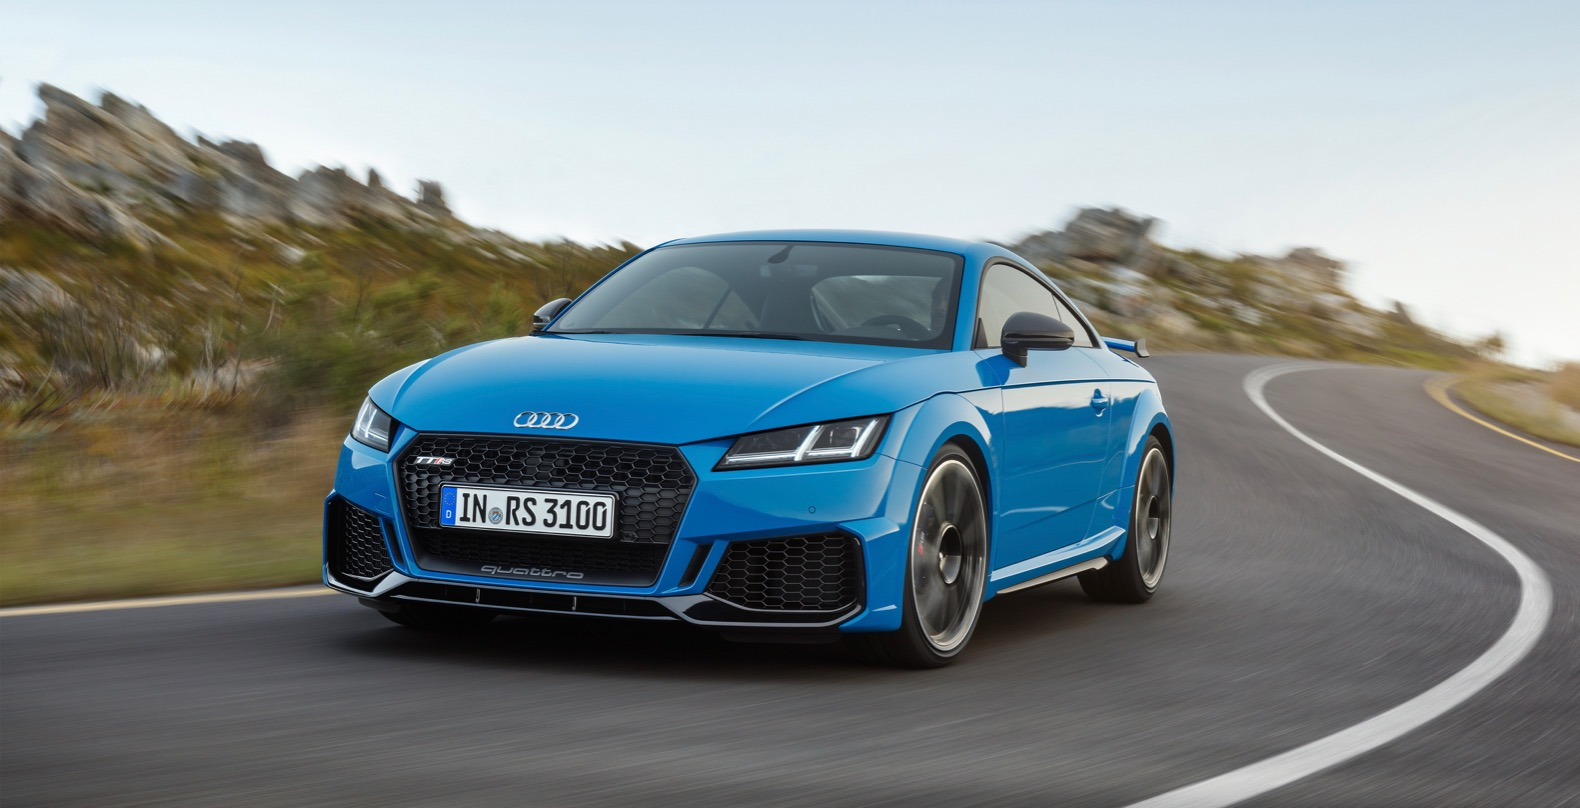 2019 Audi TT RS Coupe and Roadster get a facelift   The ...